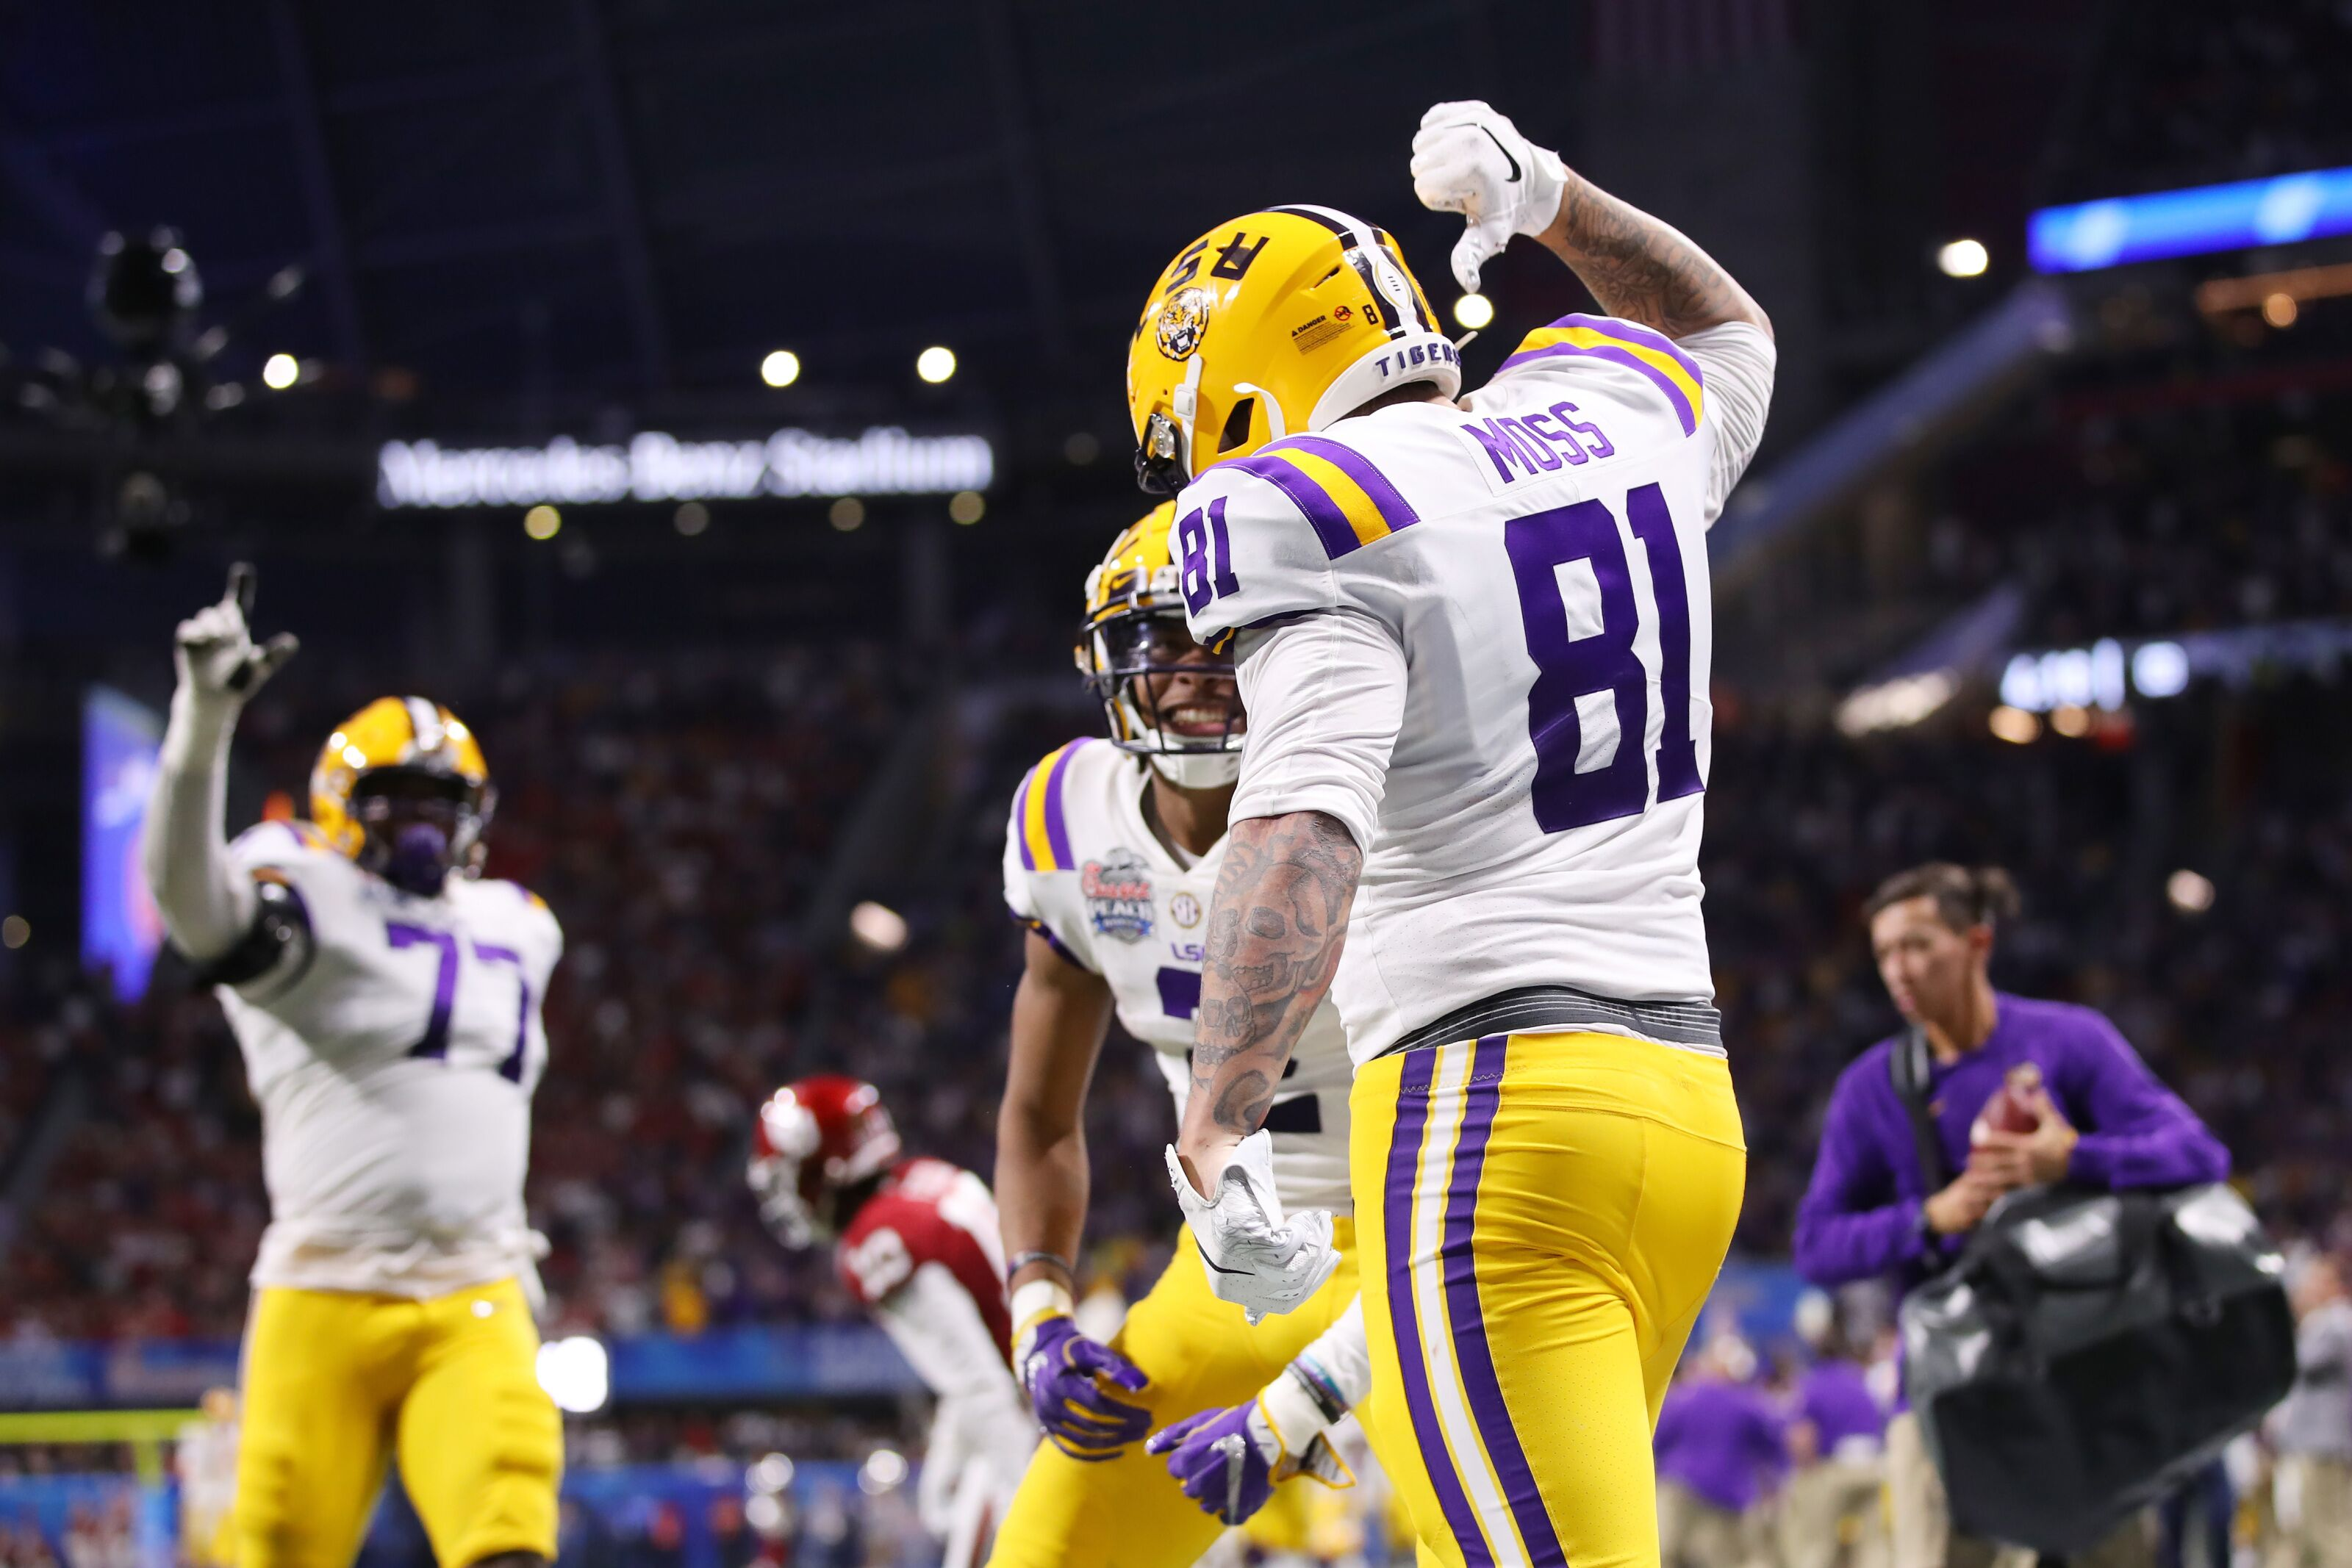 LSU Football: Thaddeus Moss going to NFL hurts, but Tigers are in good shape